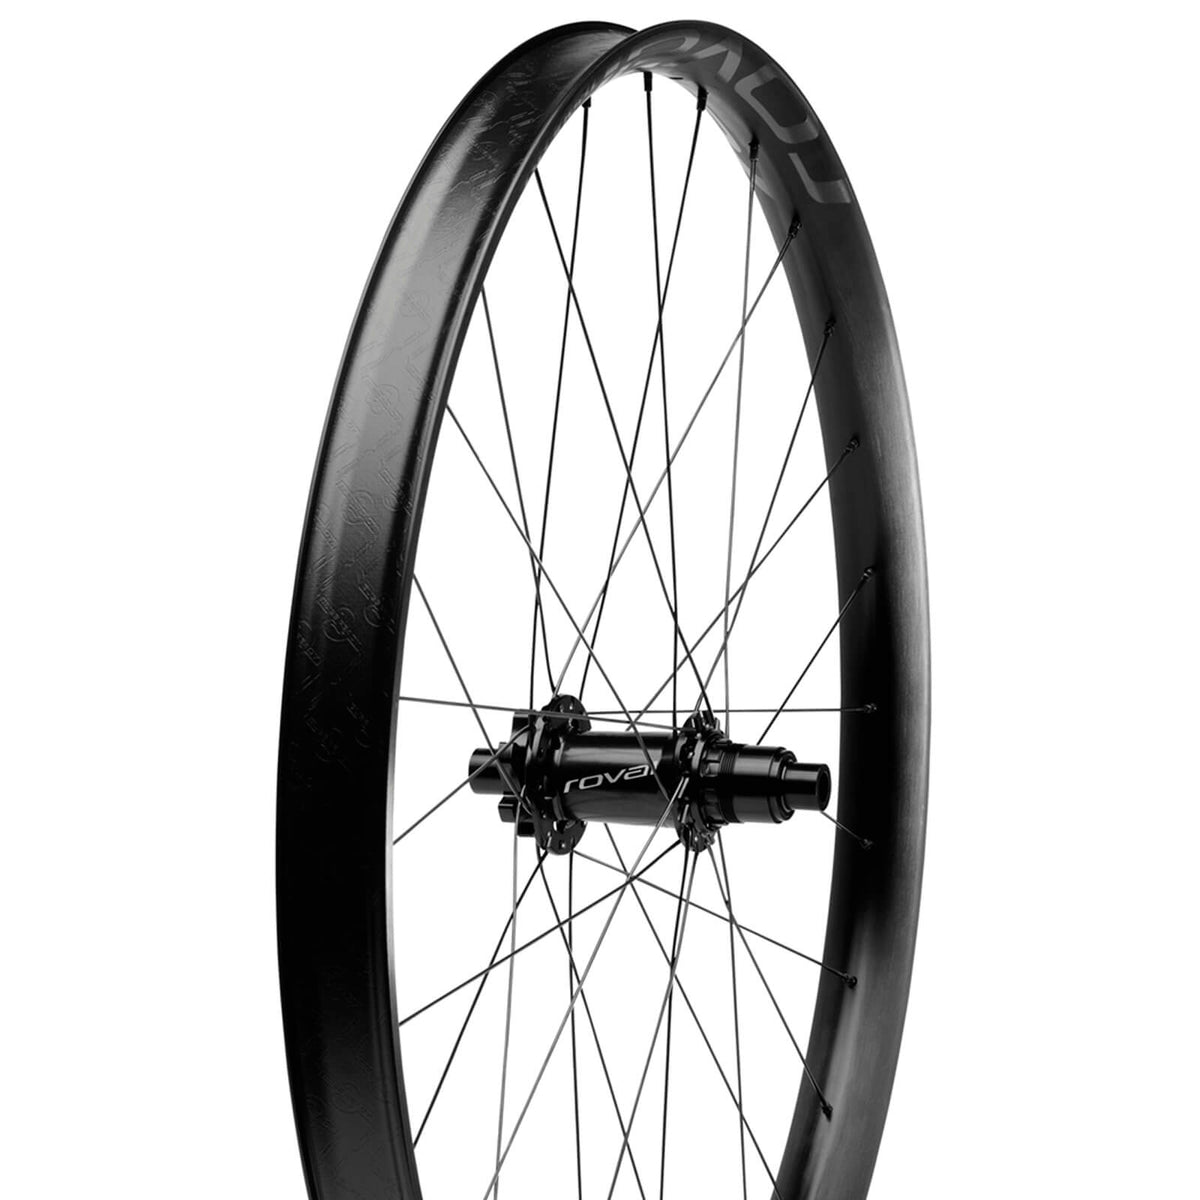 Traverse 38 rear wheel